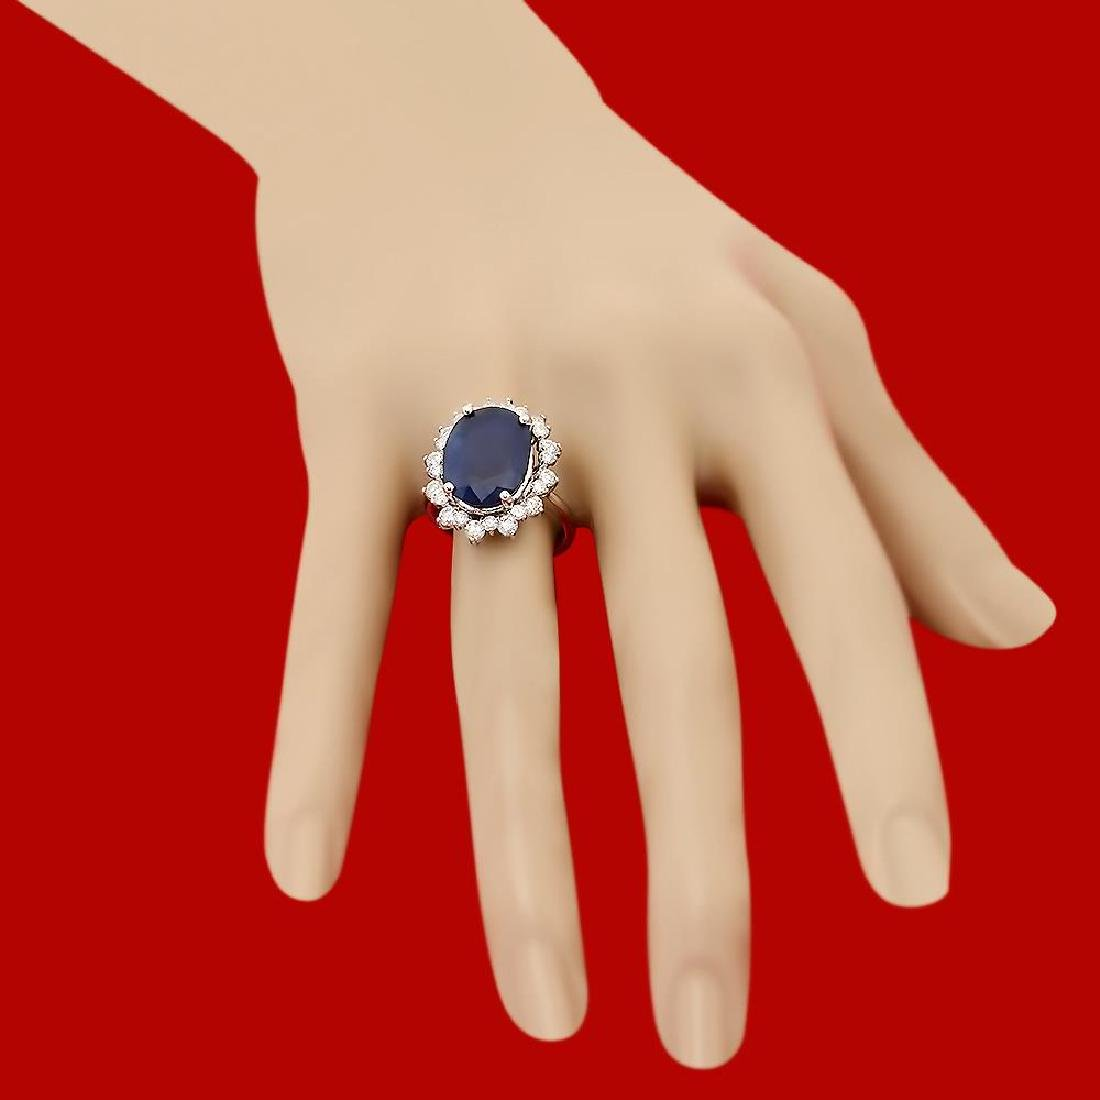 14k Gold 10.57ct Sapphire 1.77ct Diamond Ring - 3